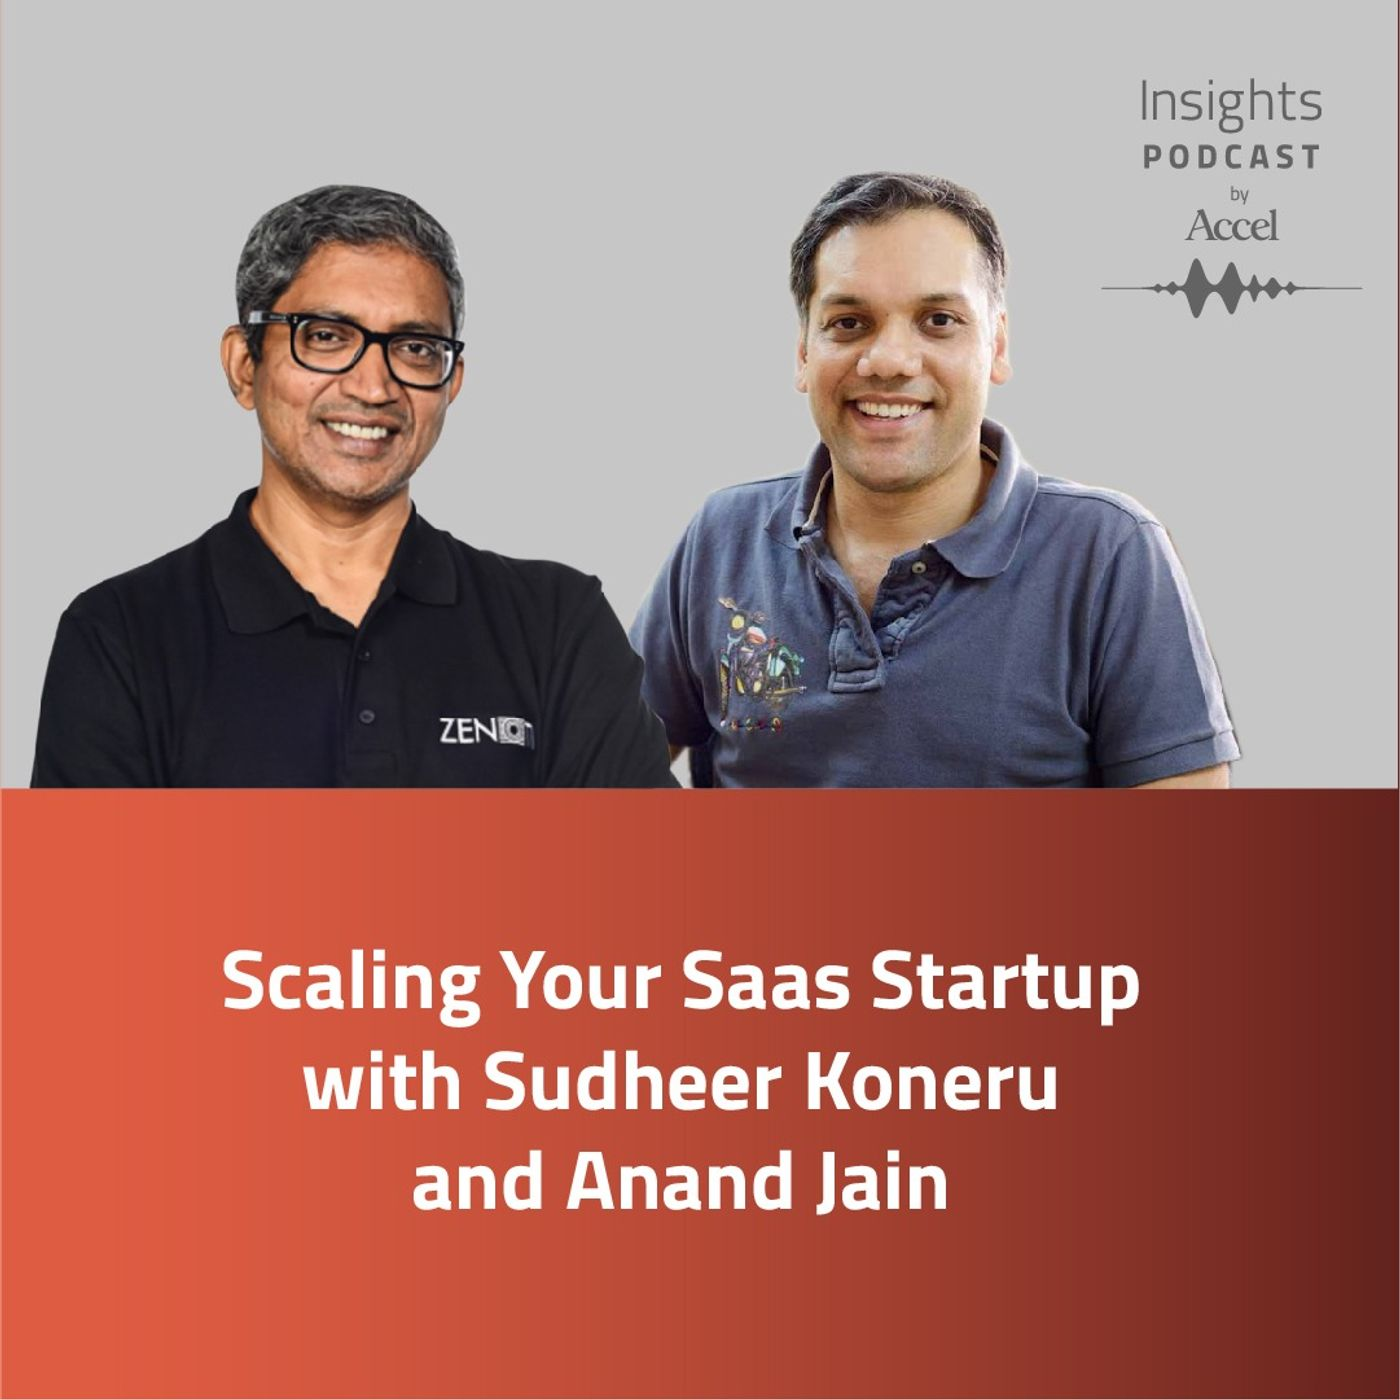 INSIGHTS #52 - Scaling your SaaS Startup with Sudheer Koneru and Anand Jain